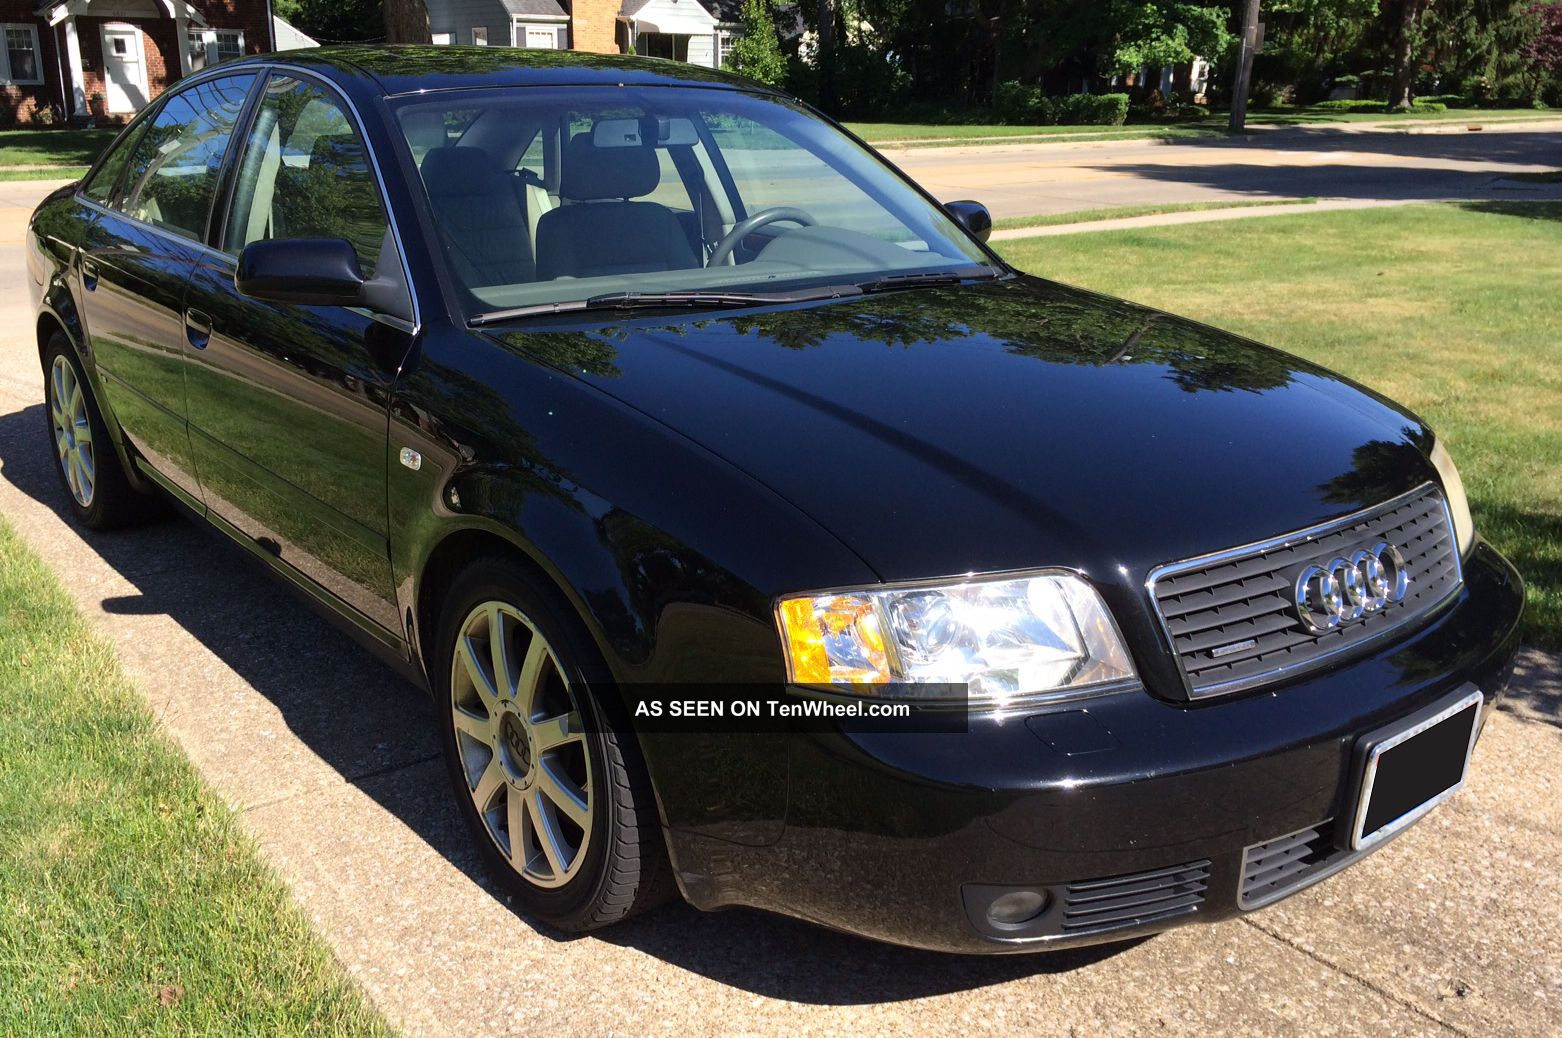 2004 audi a6 quattro s line 2 7l v6 twin turbo all. Black Bedroom Furniture Sets. Home Design Ideas